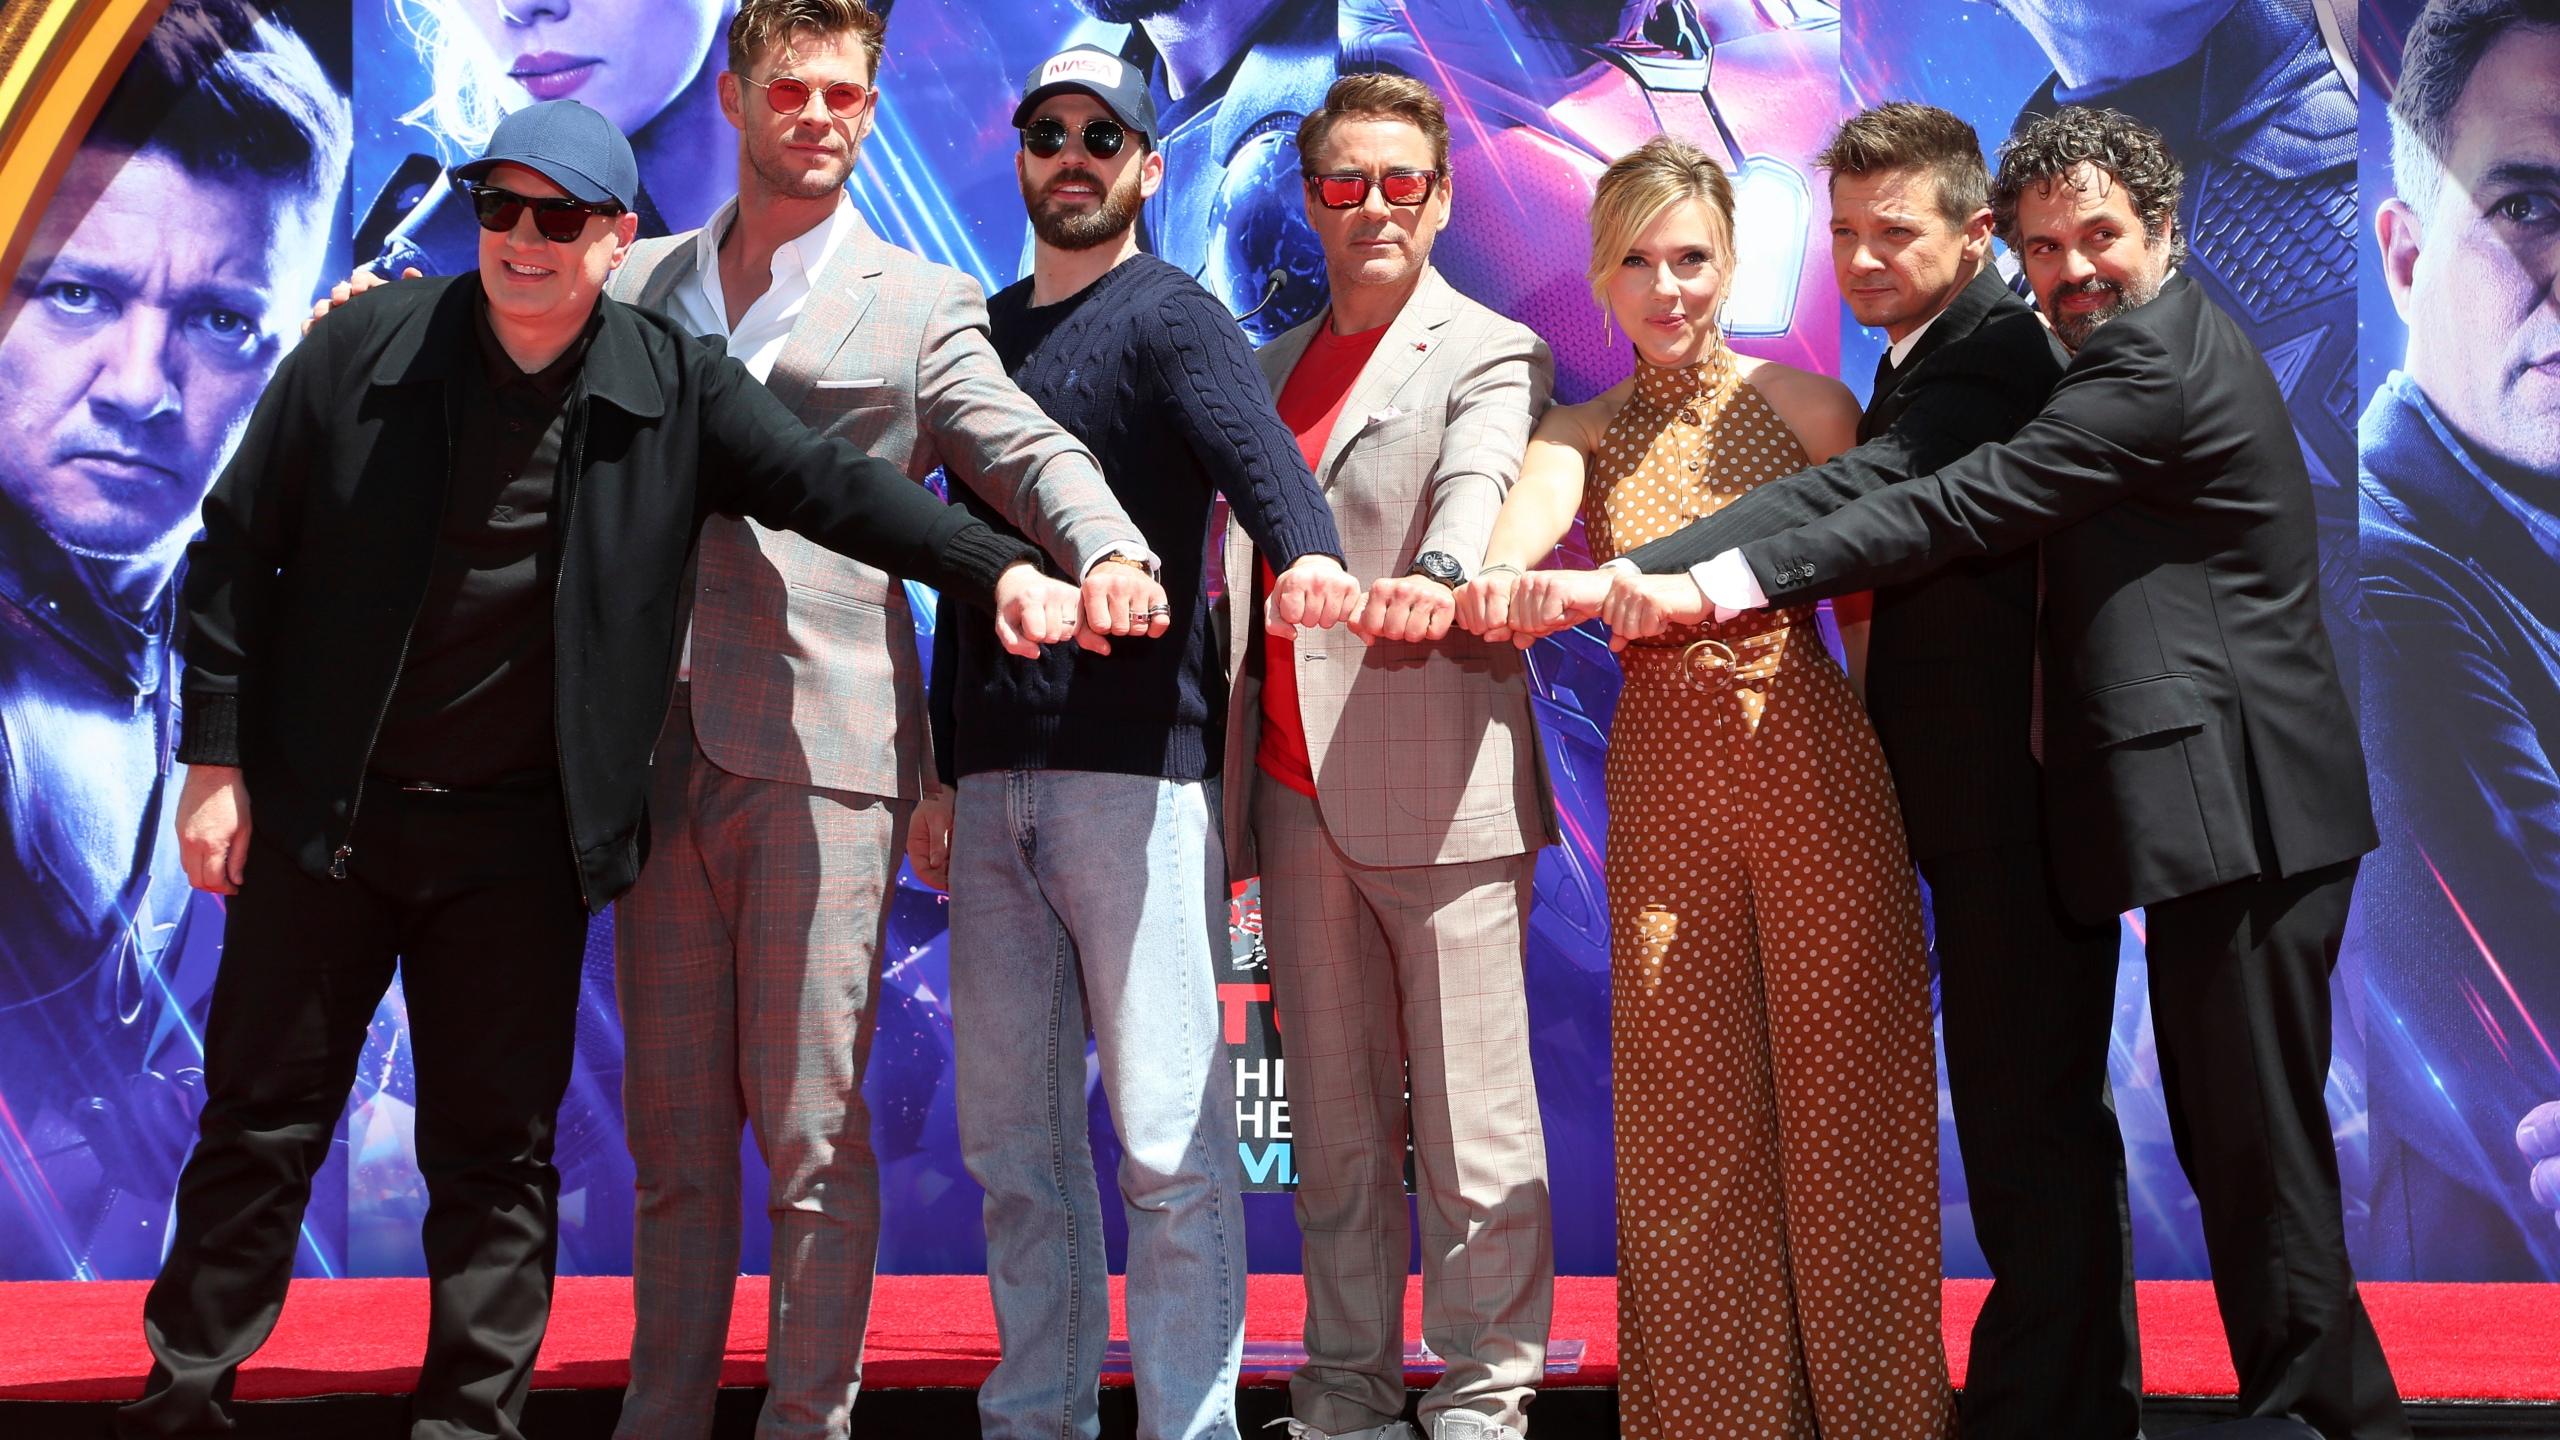 The_Cast_of__Avengers__End_Game__Hand_and_Footprint_Ceremony_76329-159532.jpg25634185